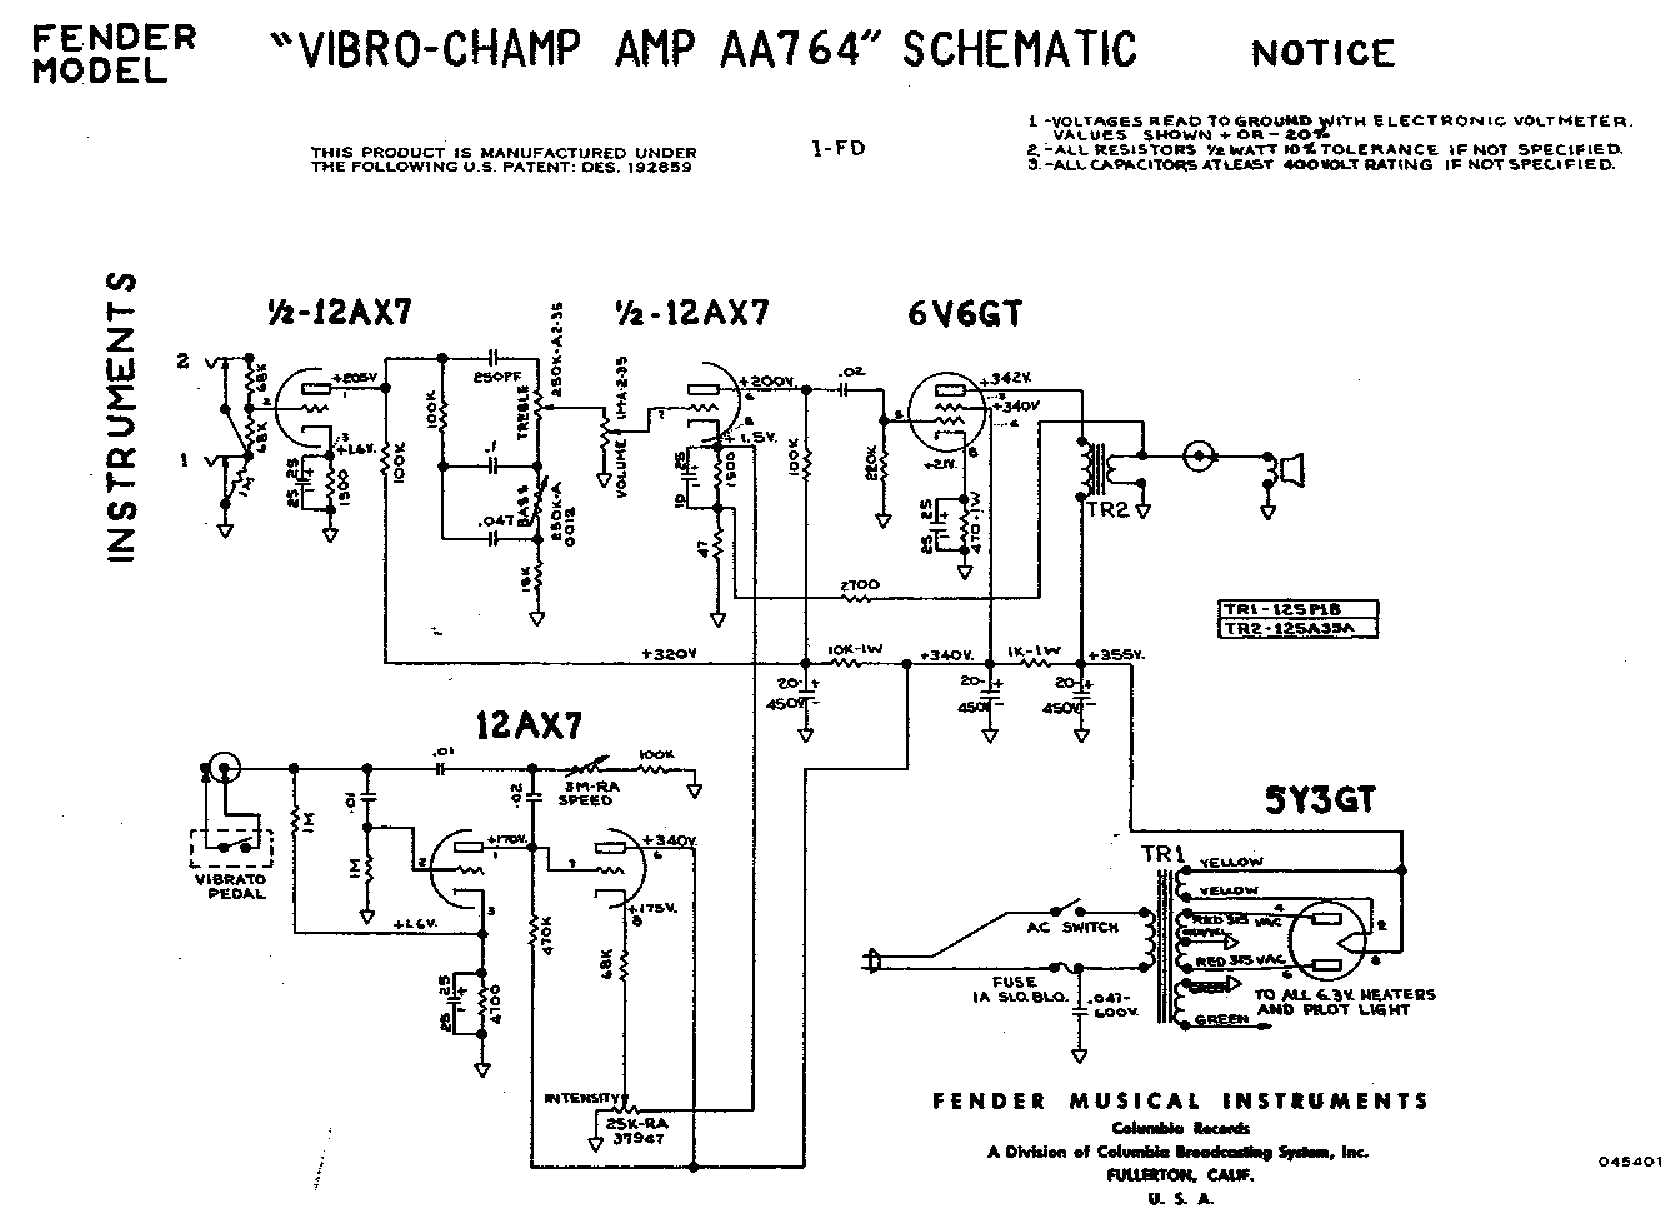 Fender Champ Vibro Aa764 Service Manual Download